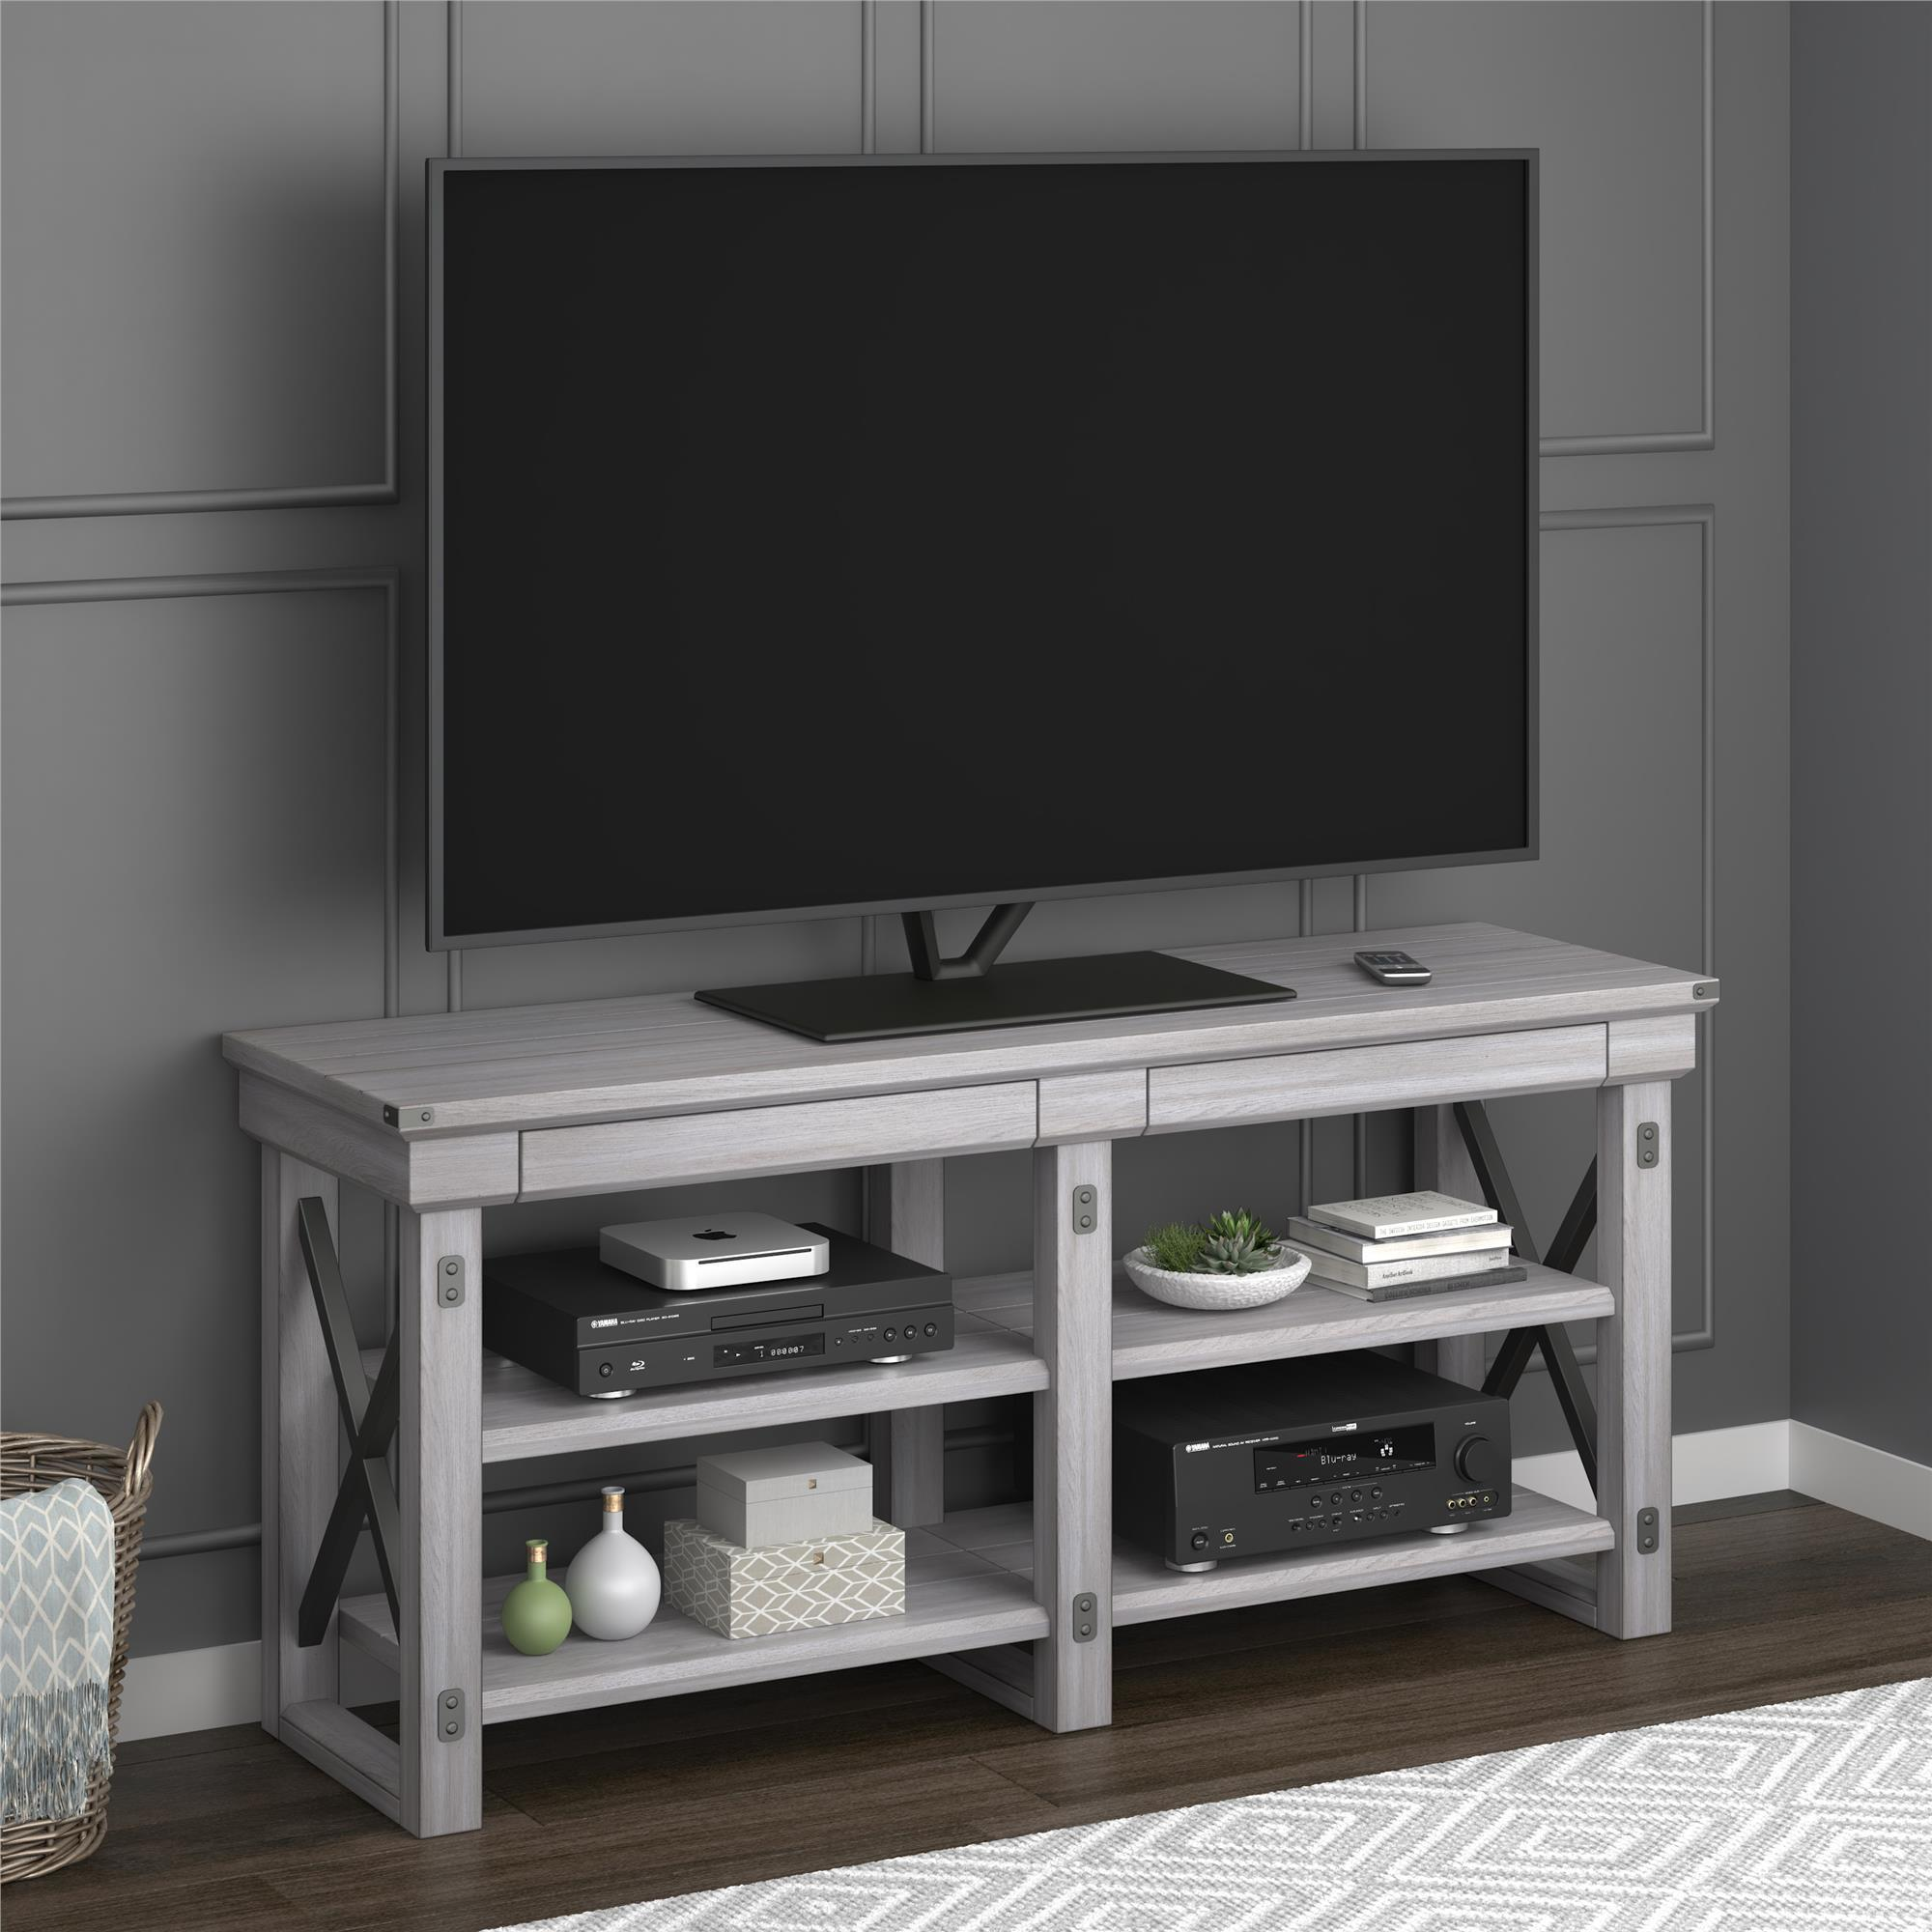 Shop Avenue Greene Woodgate Rustic White Tv Stand For Up To 65 Inch